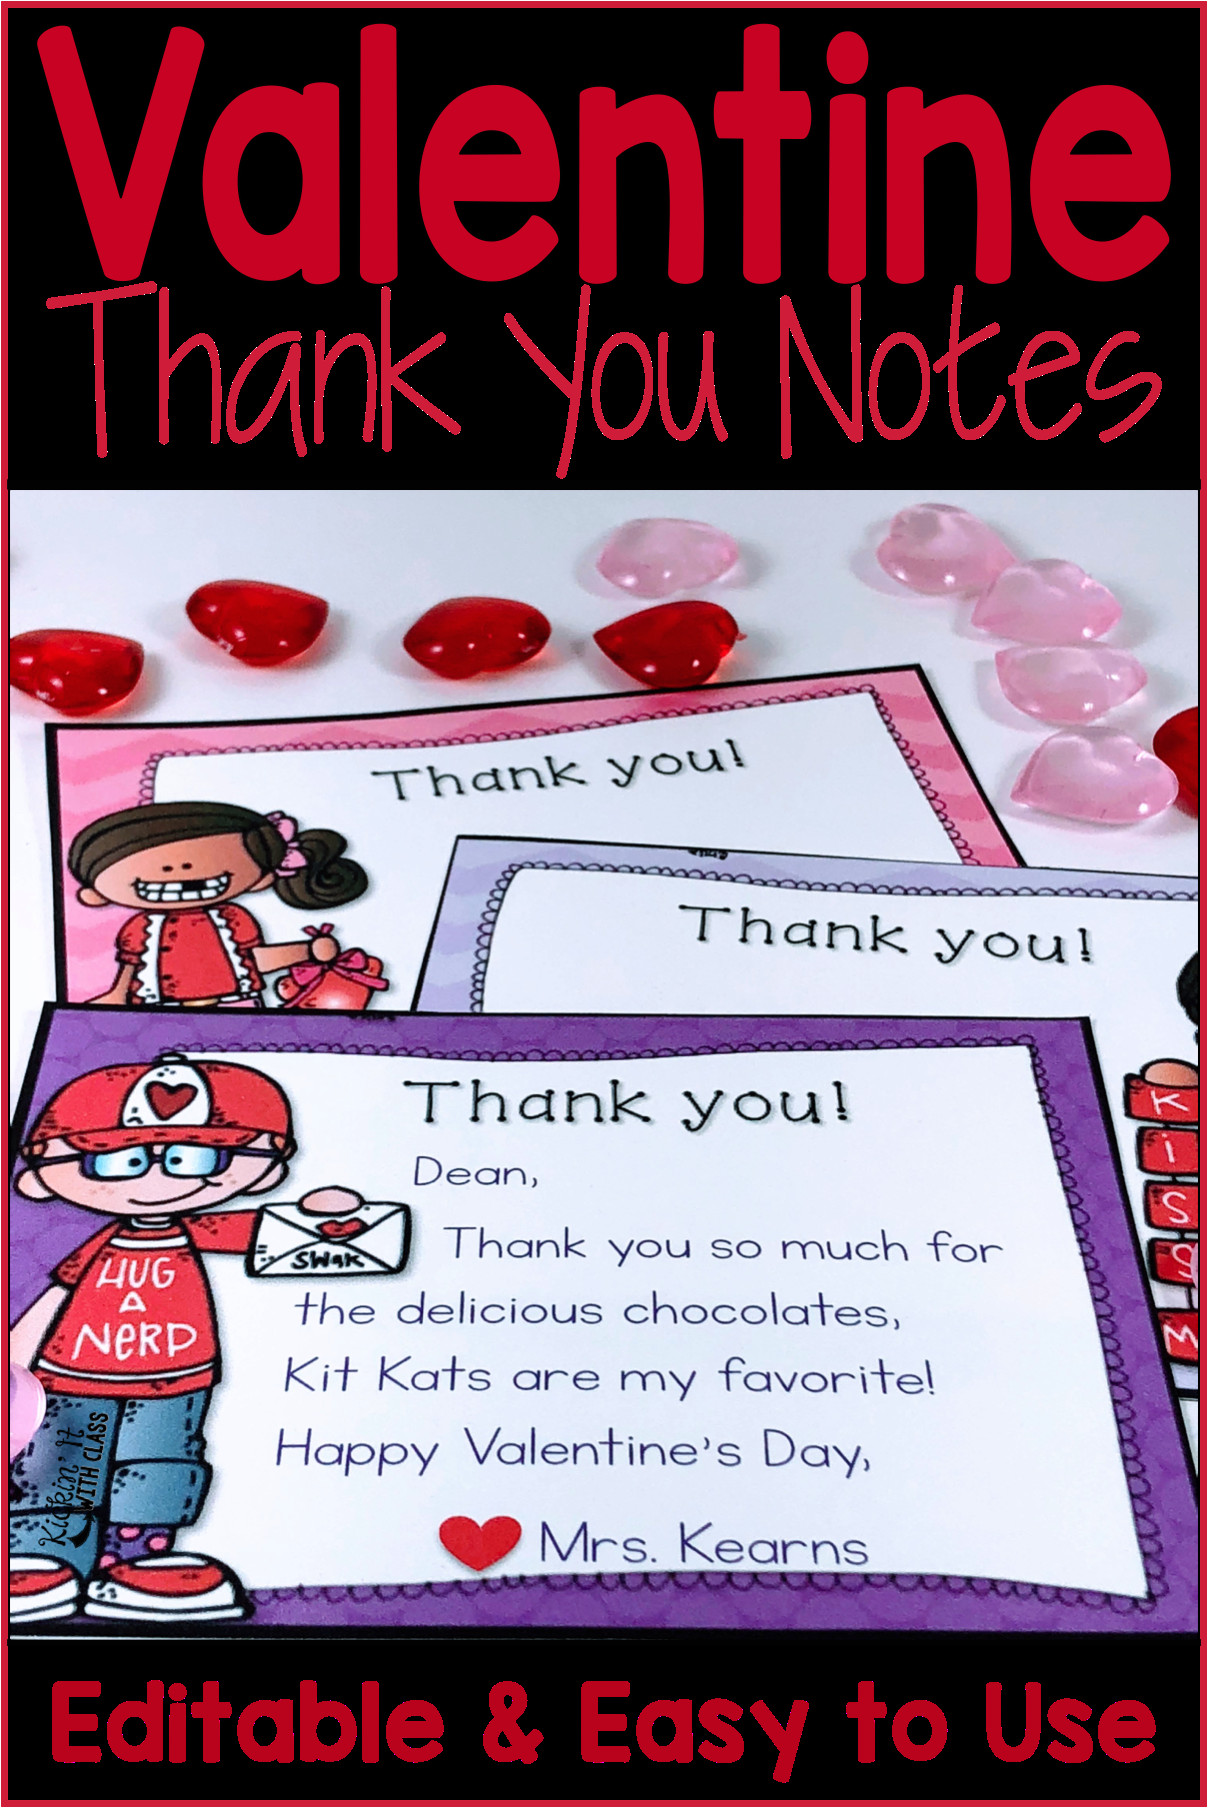 Valentine Things to Write In A Card Valentine Thank You Notes Editable with Images Teacher